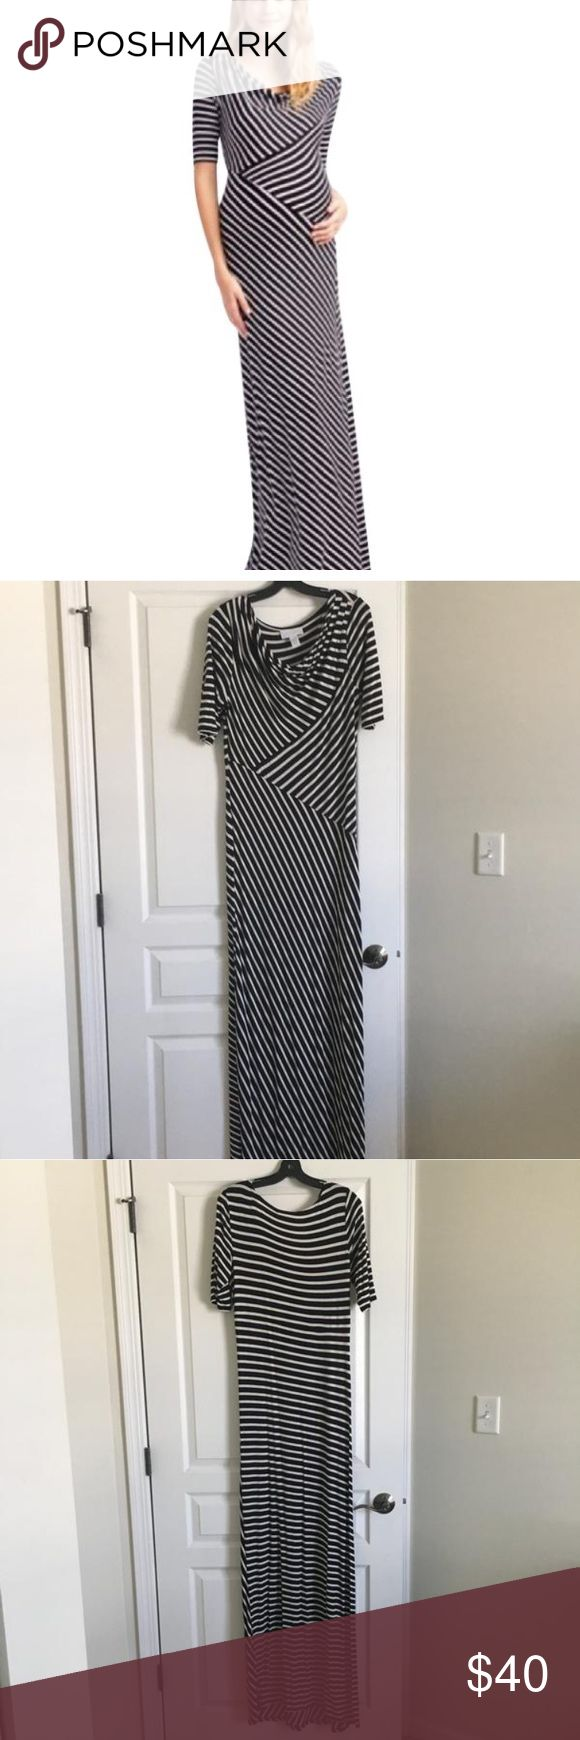 Black and White striped Maternity Dress Flattering and comfortable cotton Maternity Dress. Worn once, in excellent condition. Jessica Simpson Dresses Maxi